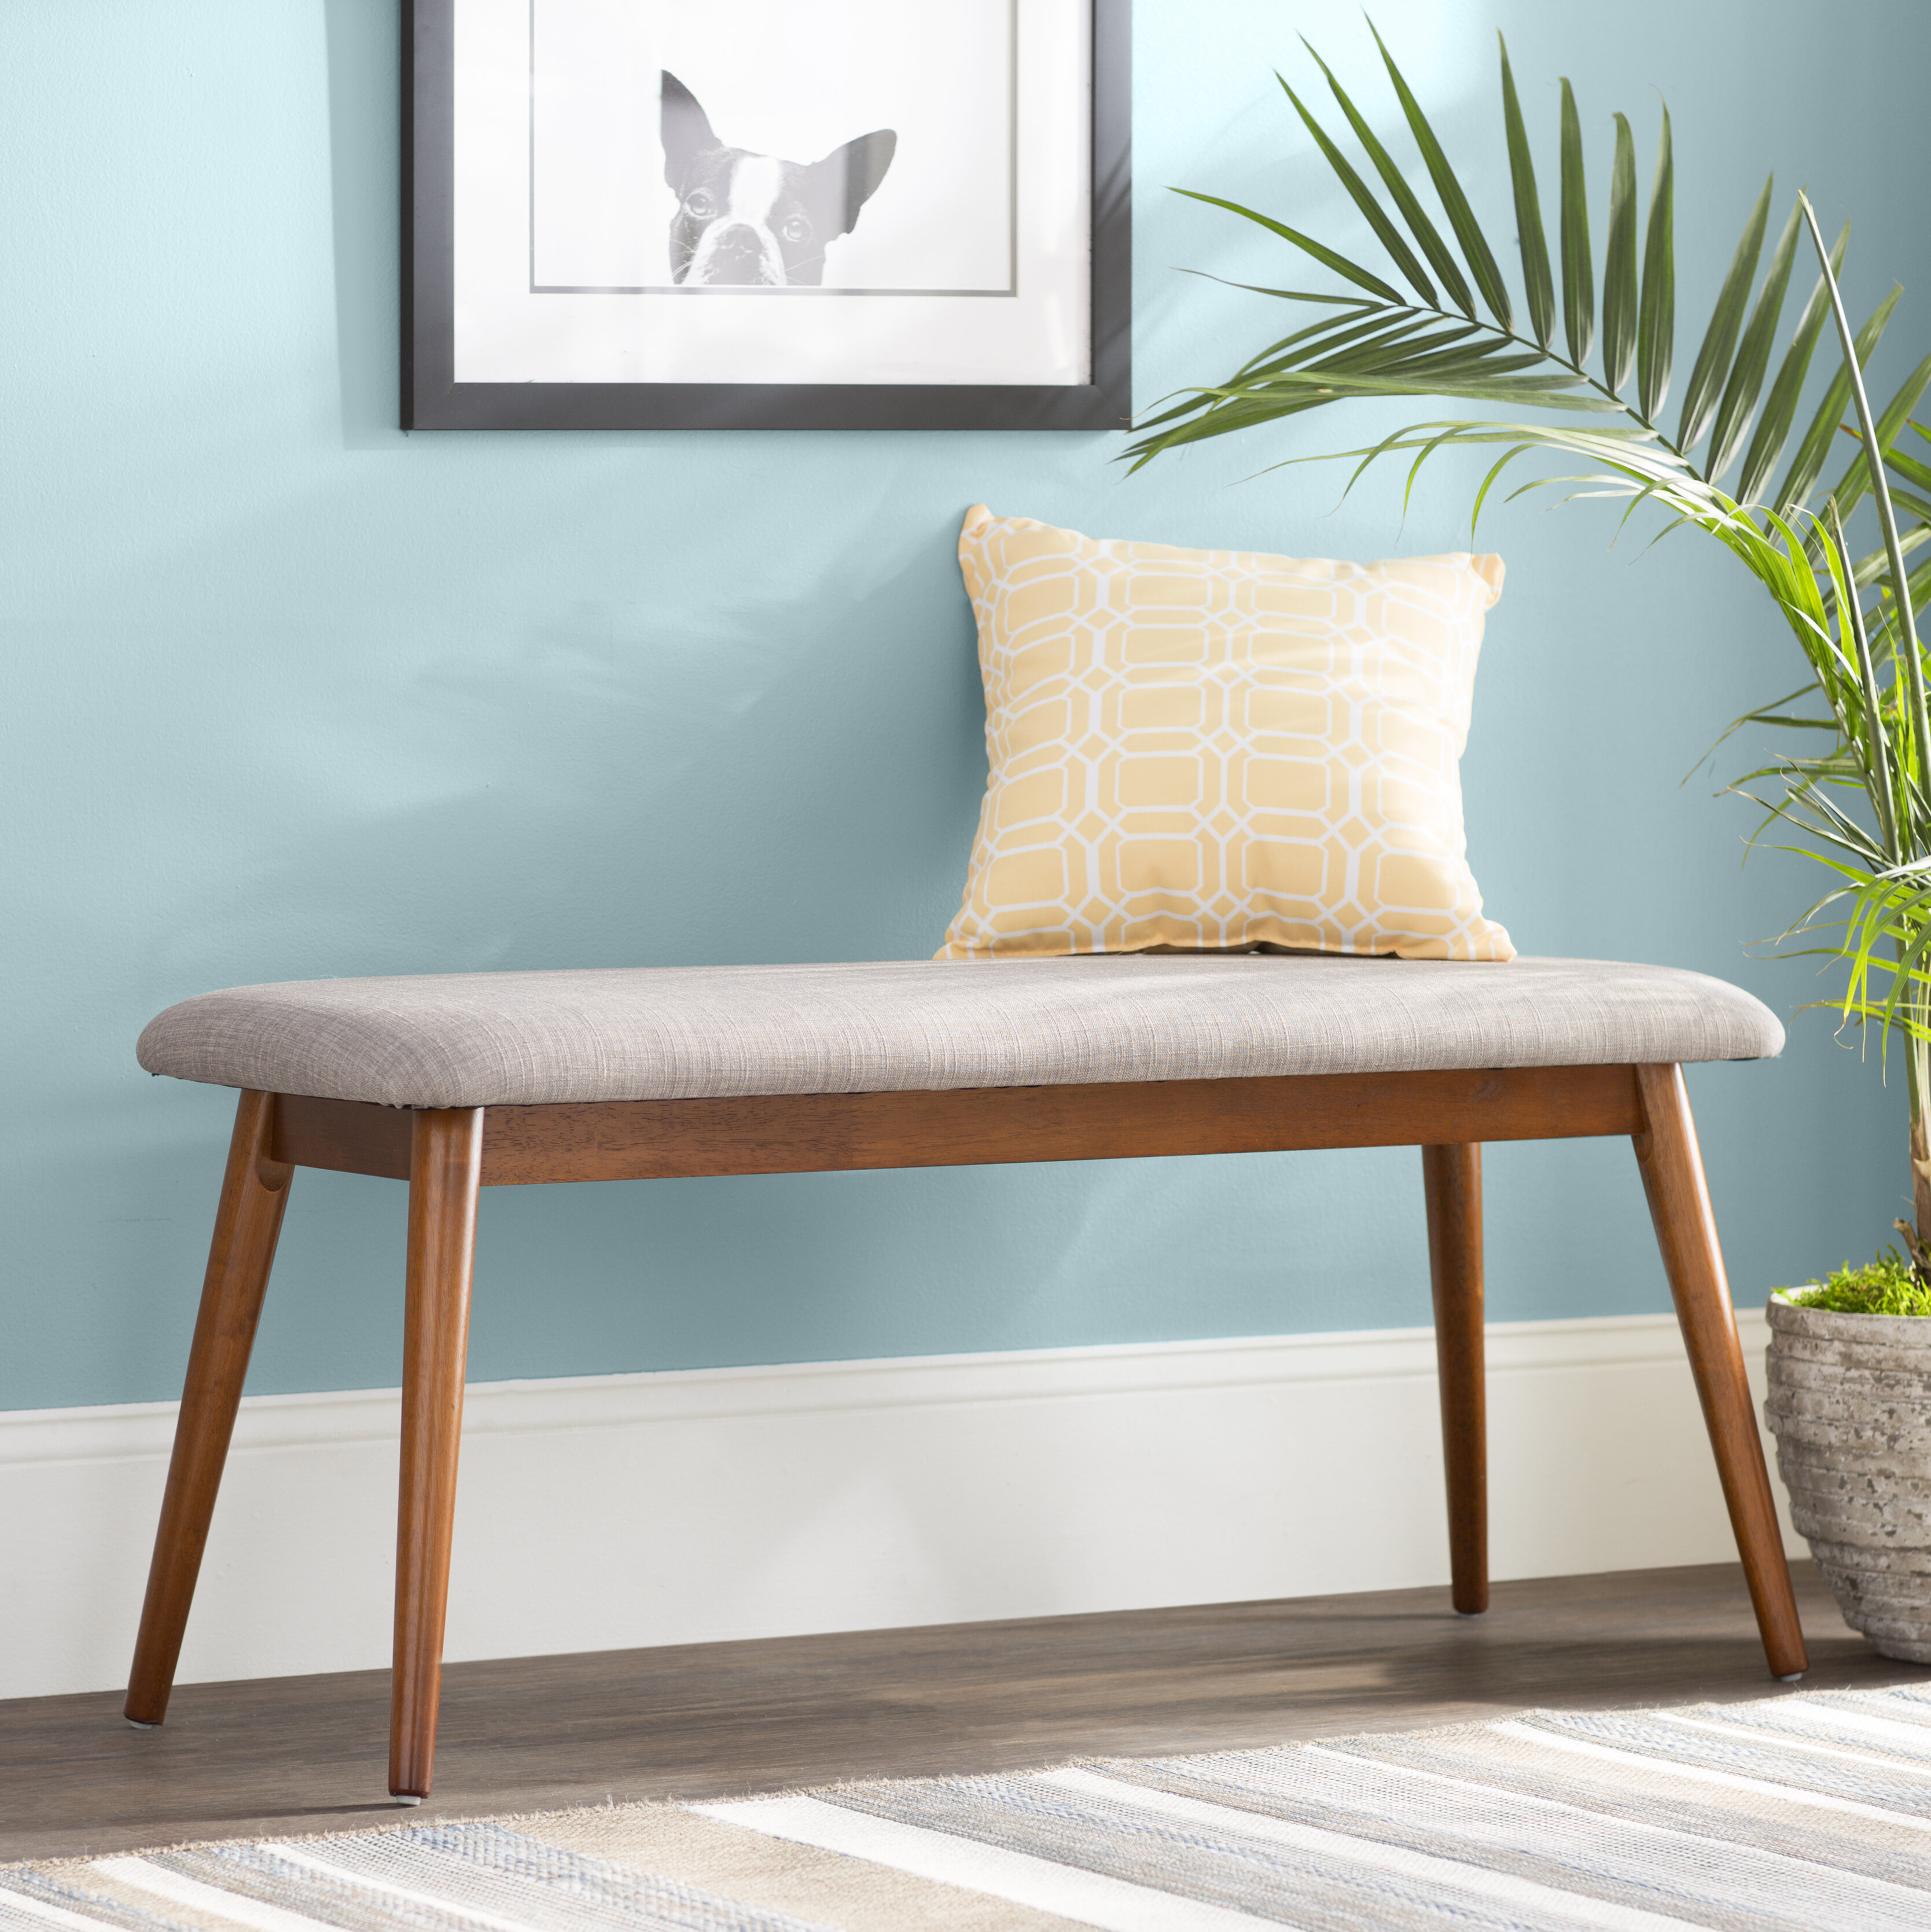 Langley Street Coral Springs Bench & Reviews | Wayfair